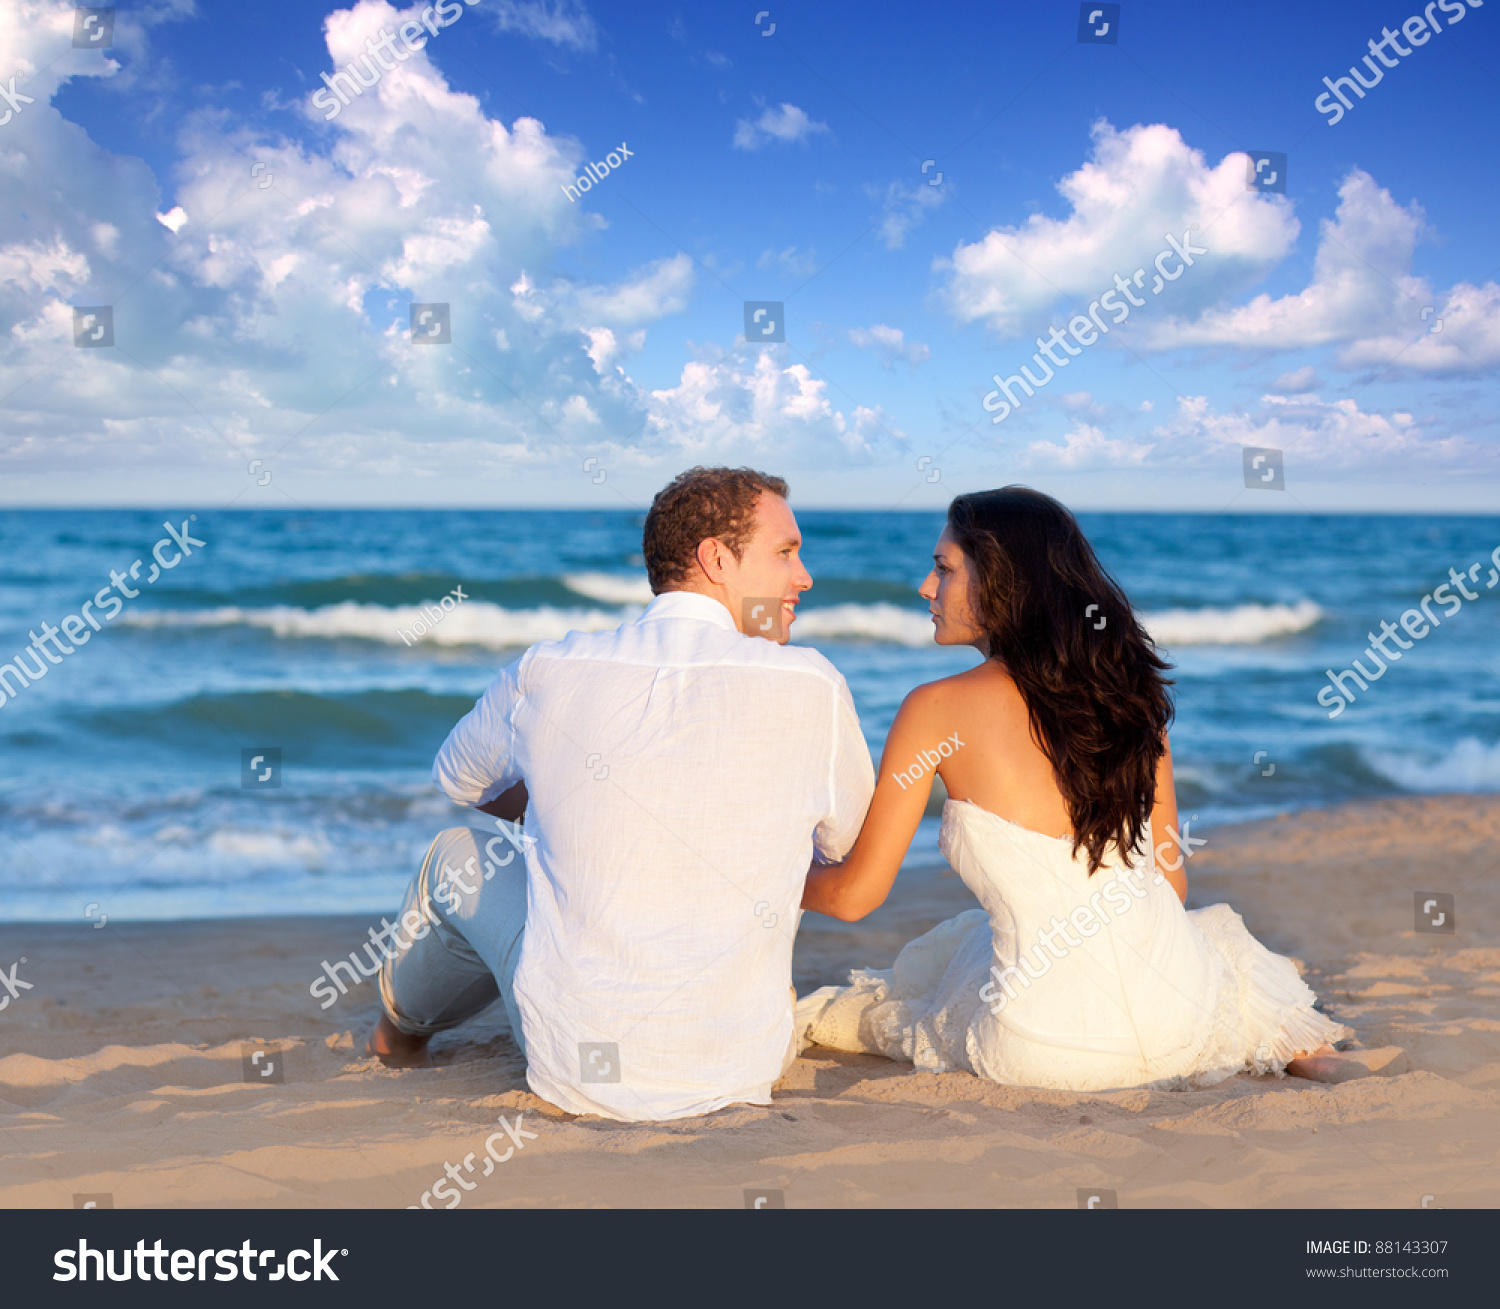 Couple Love Sitting Blue Beach On Stock Photo 88143307